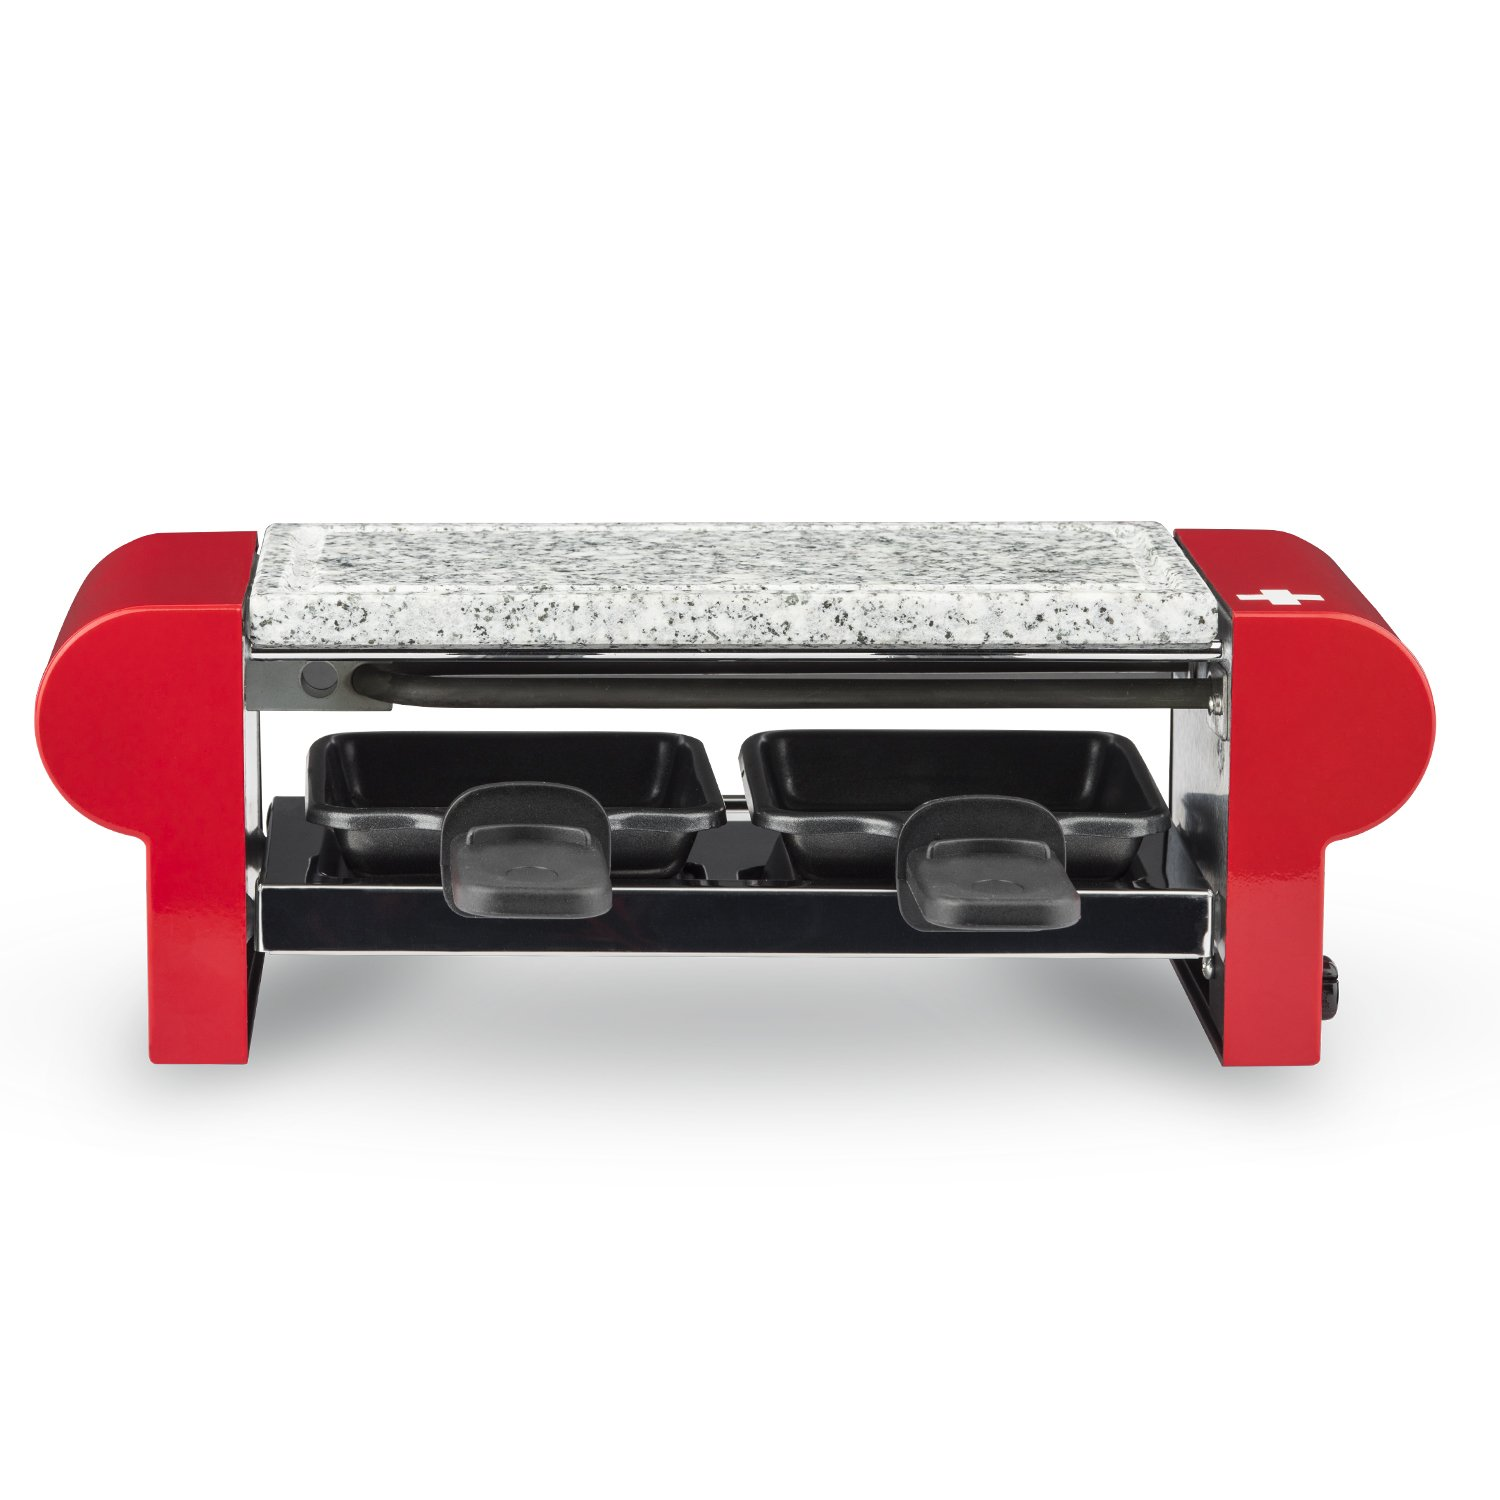 H.Koenig RP2 Raclette Grill Natural Stone 350W for 2 People